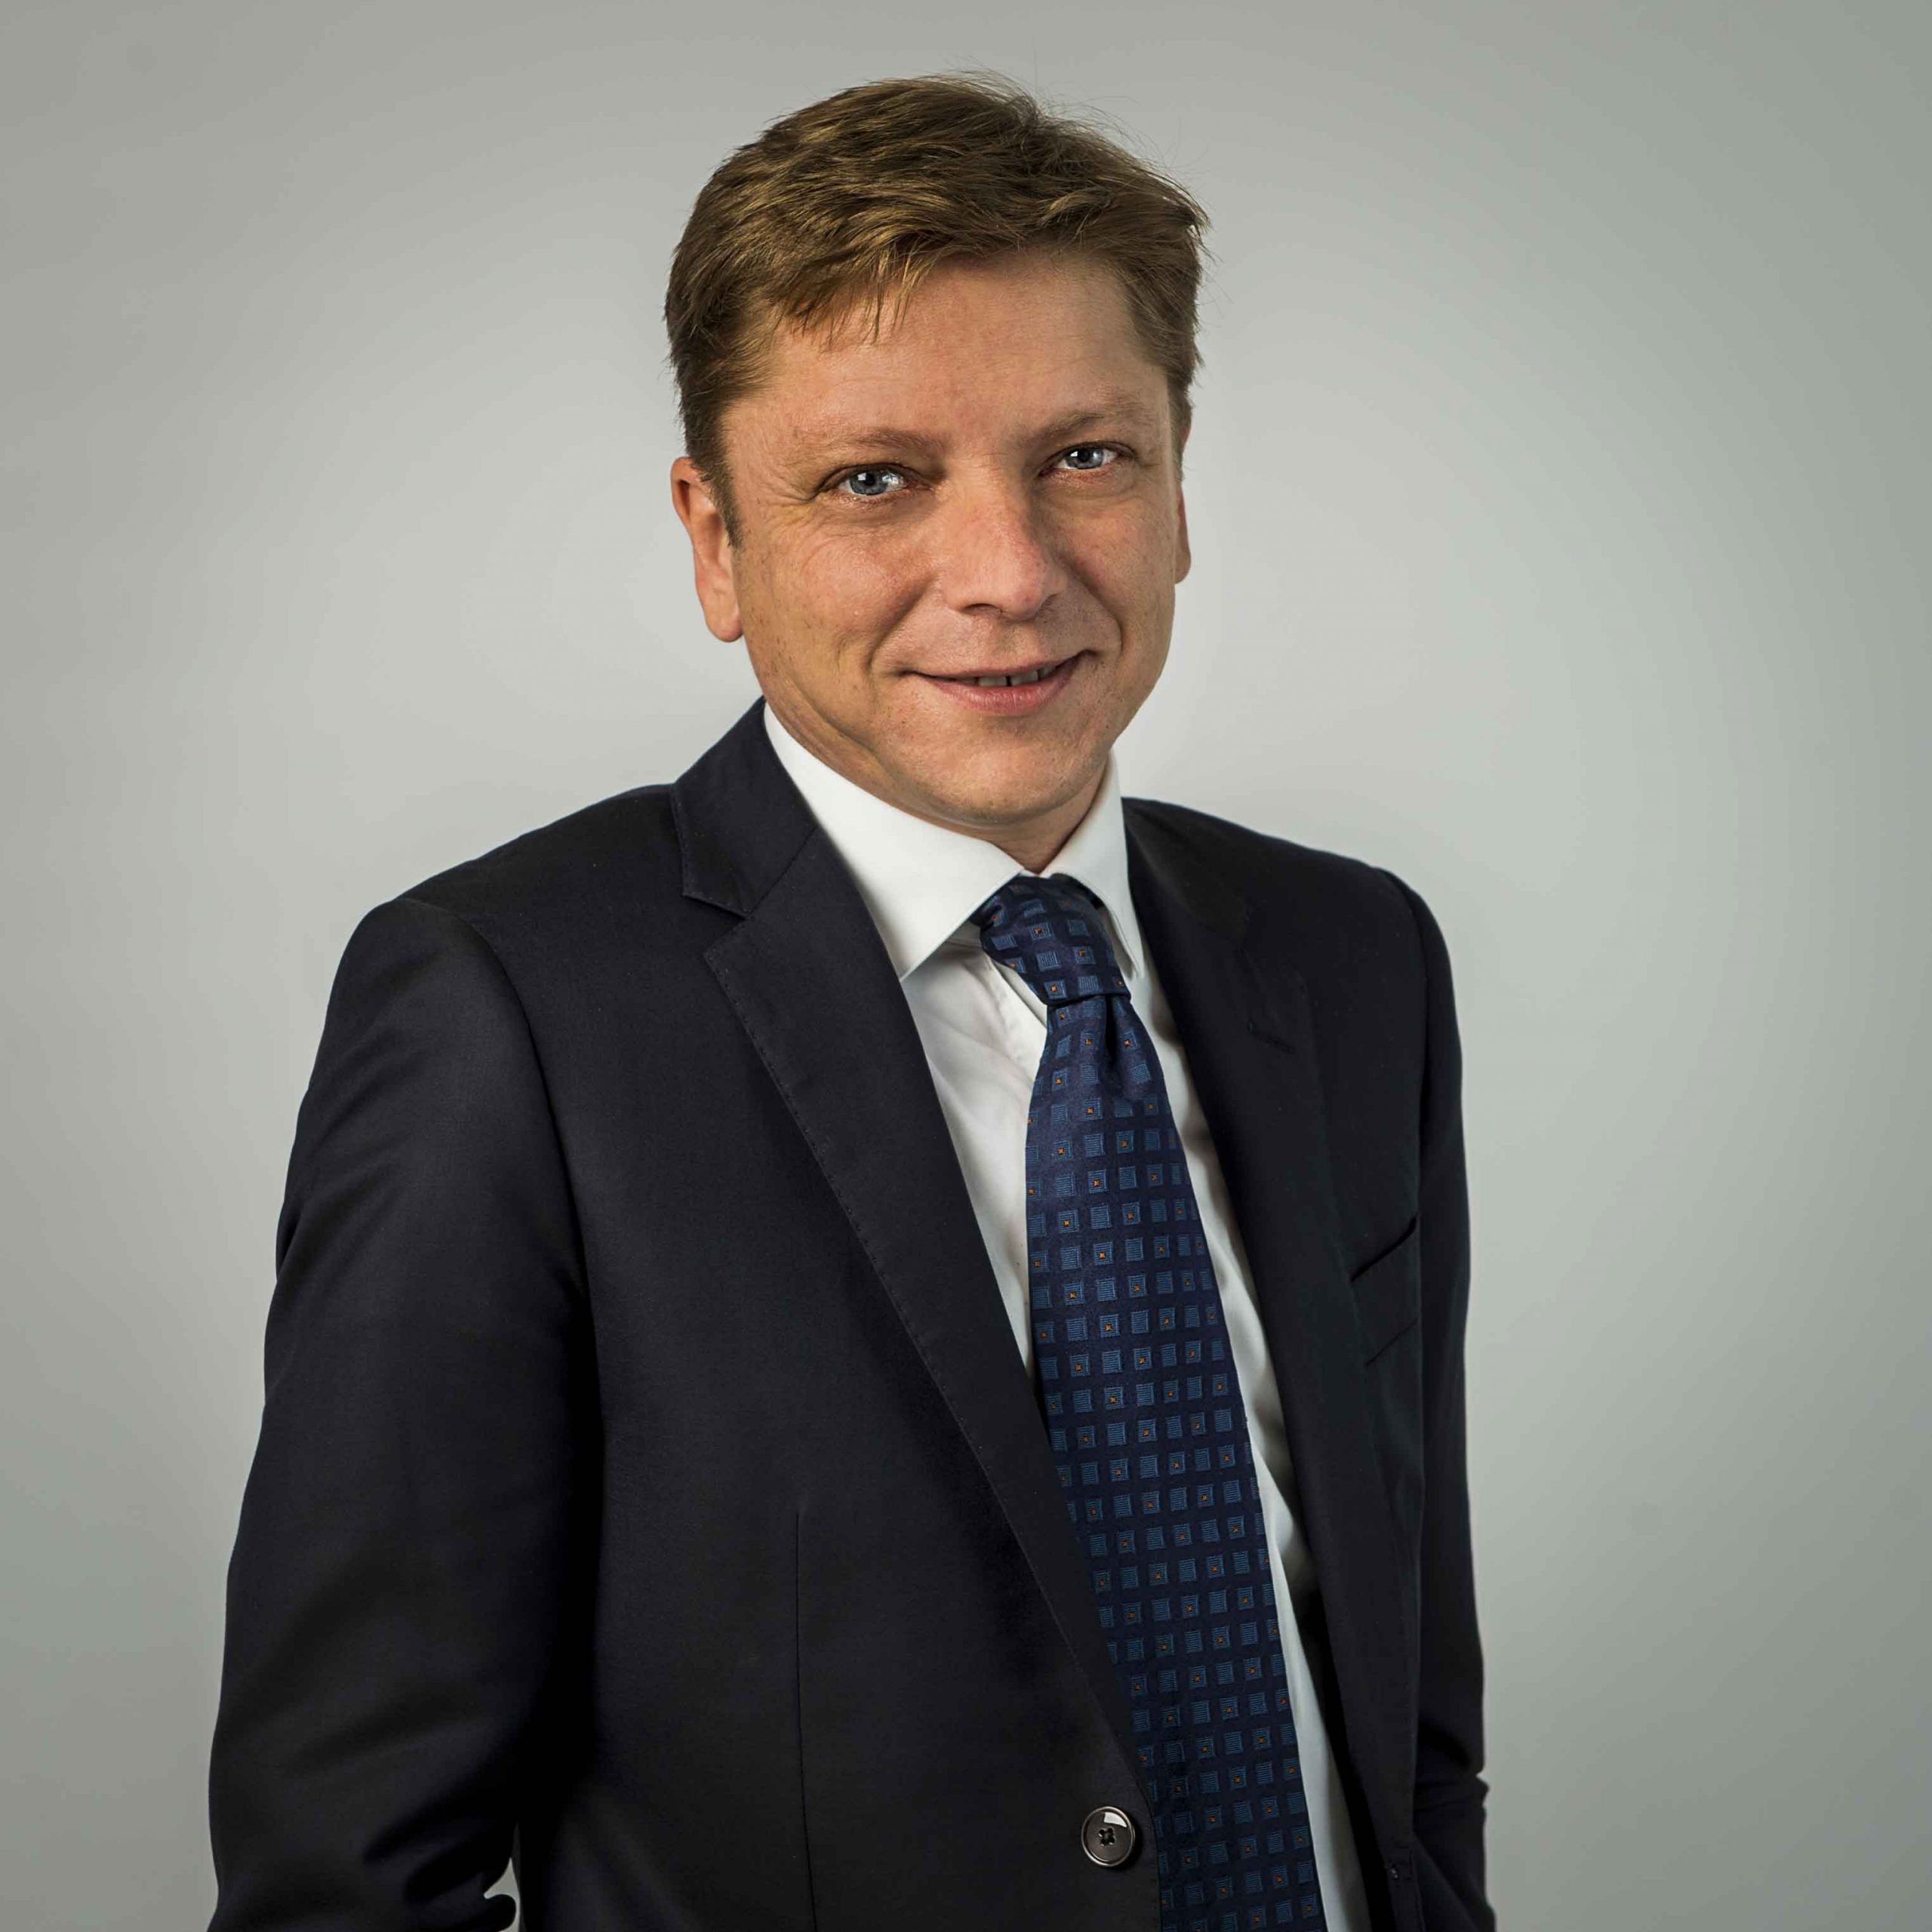 Sylvain Lhôte takes up duty as Director General